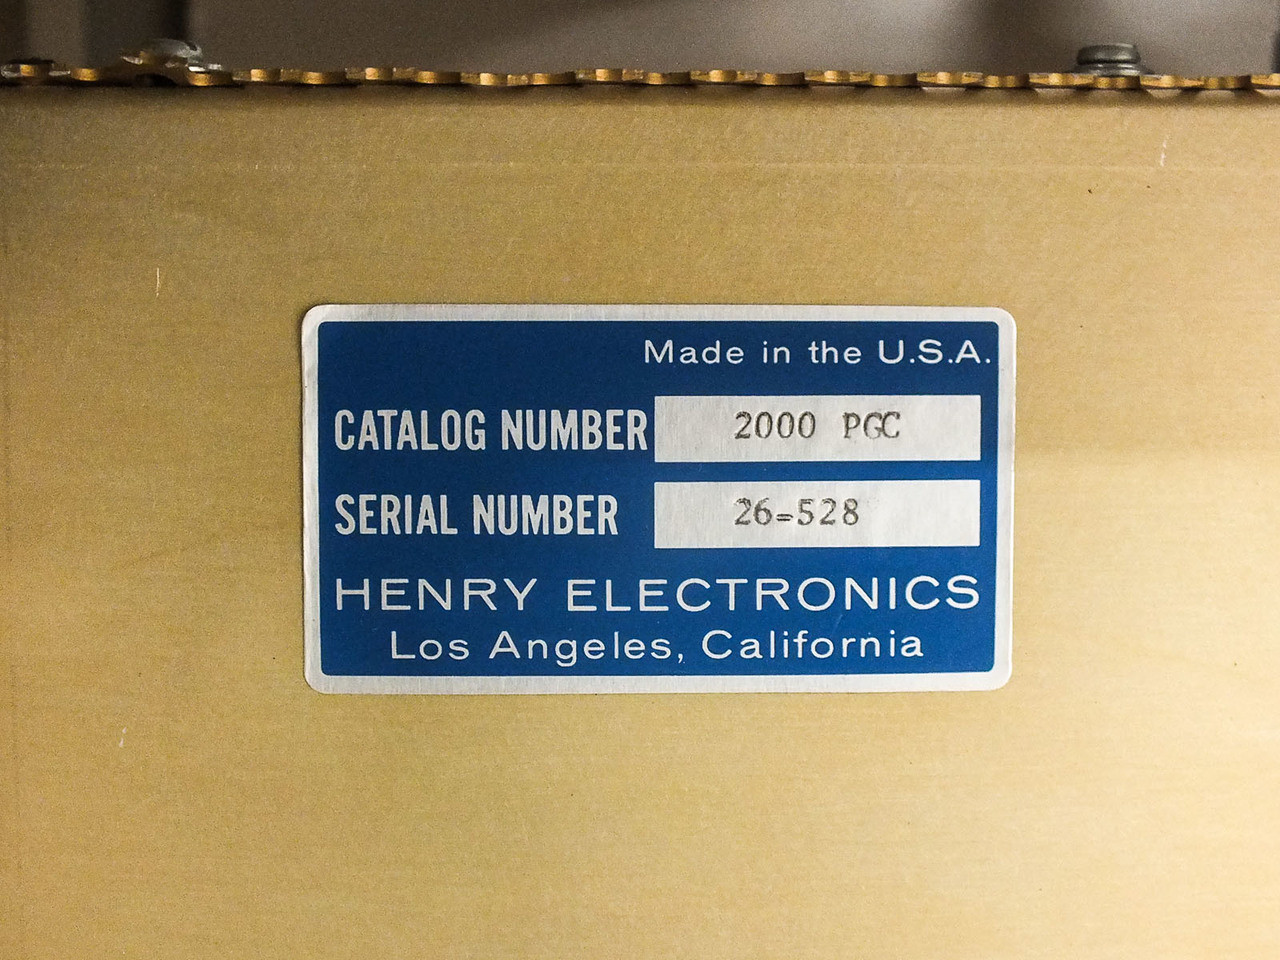 Henry Electronics 2kW RF Deck Amperex 4-125A Tube with Enclosure (2000 PGC)